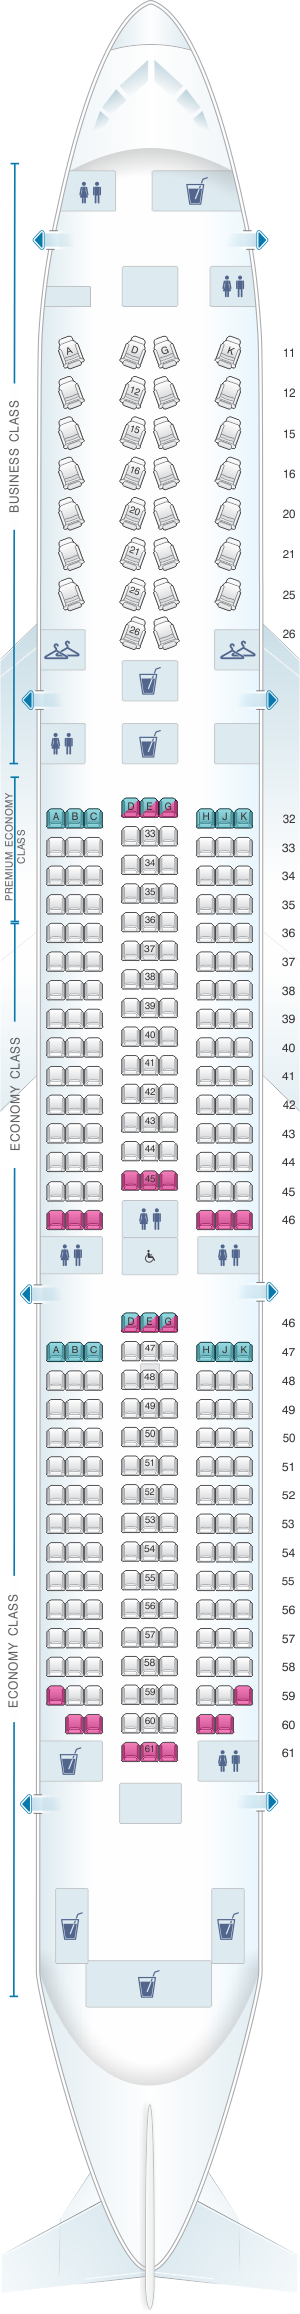 Seat map for Hainan Airlines Boeing B787-9 config.2